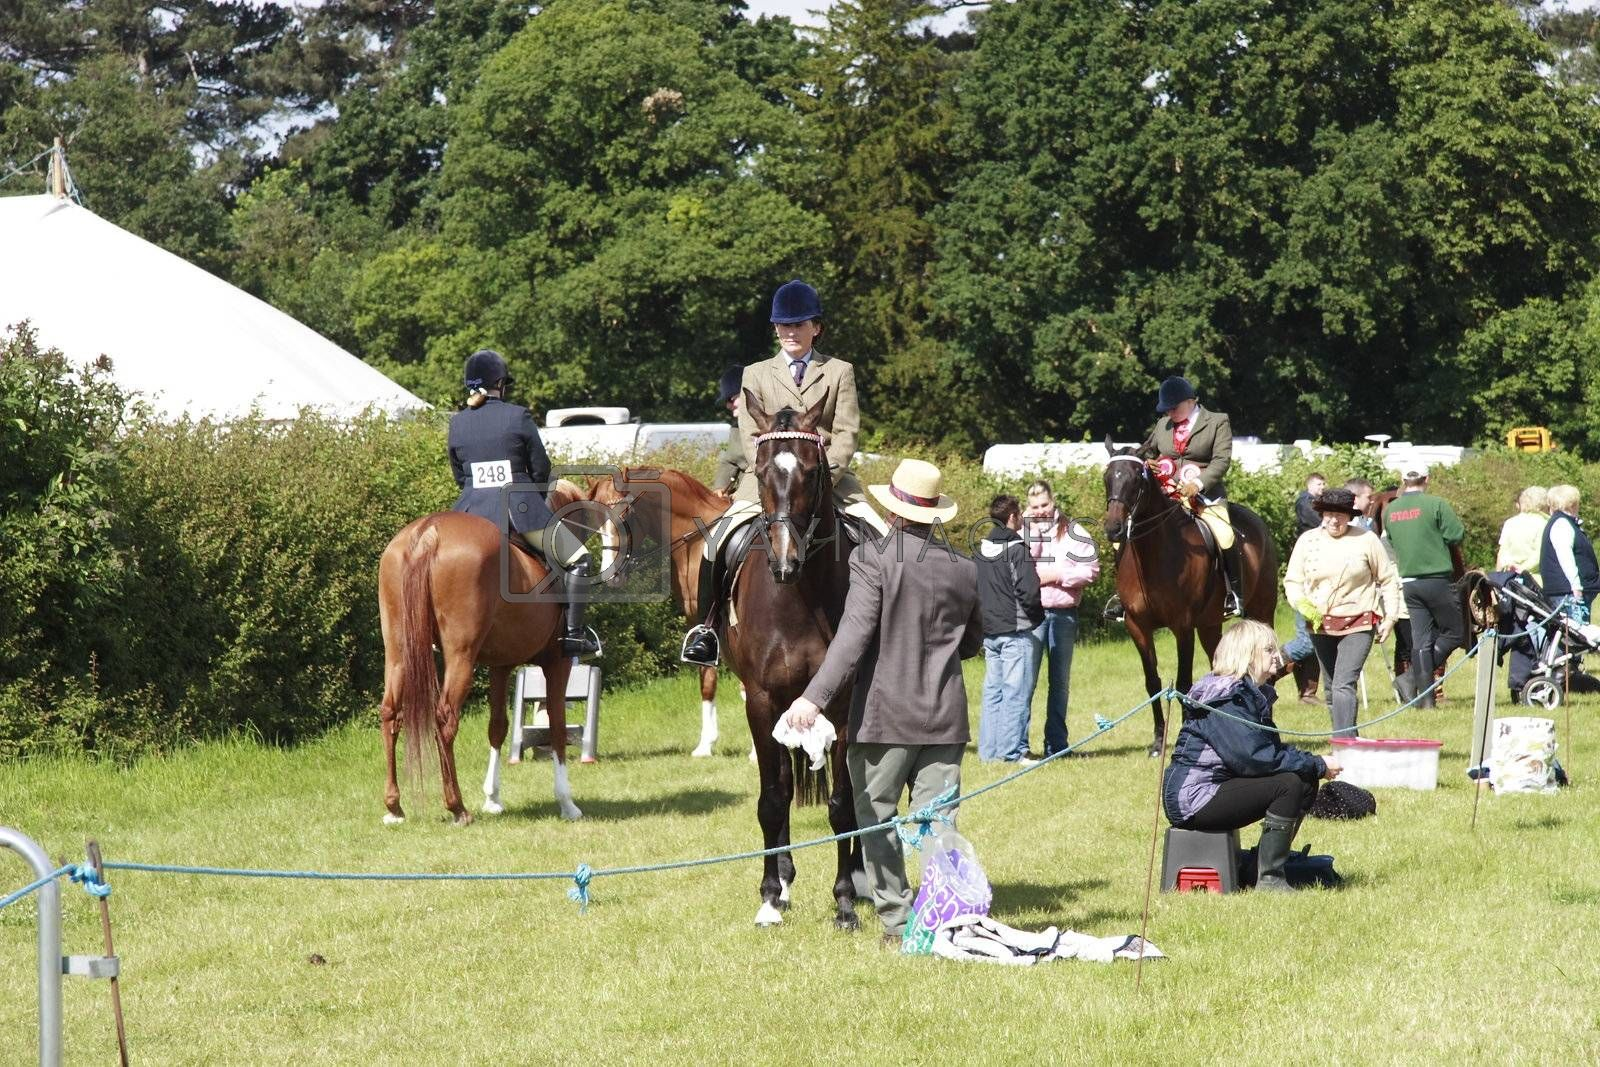 horses and riders preparing to be shown in the ring at the  Derbyshire county show 2008